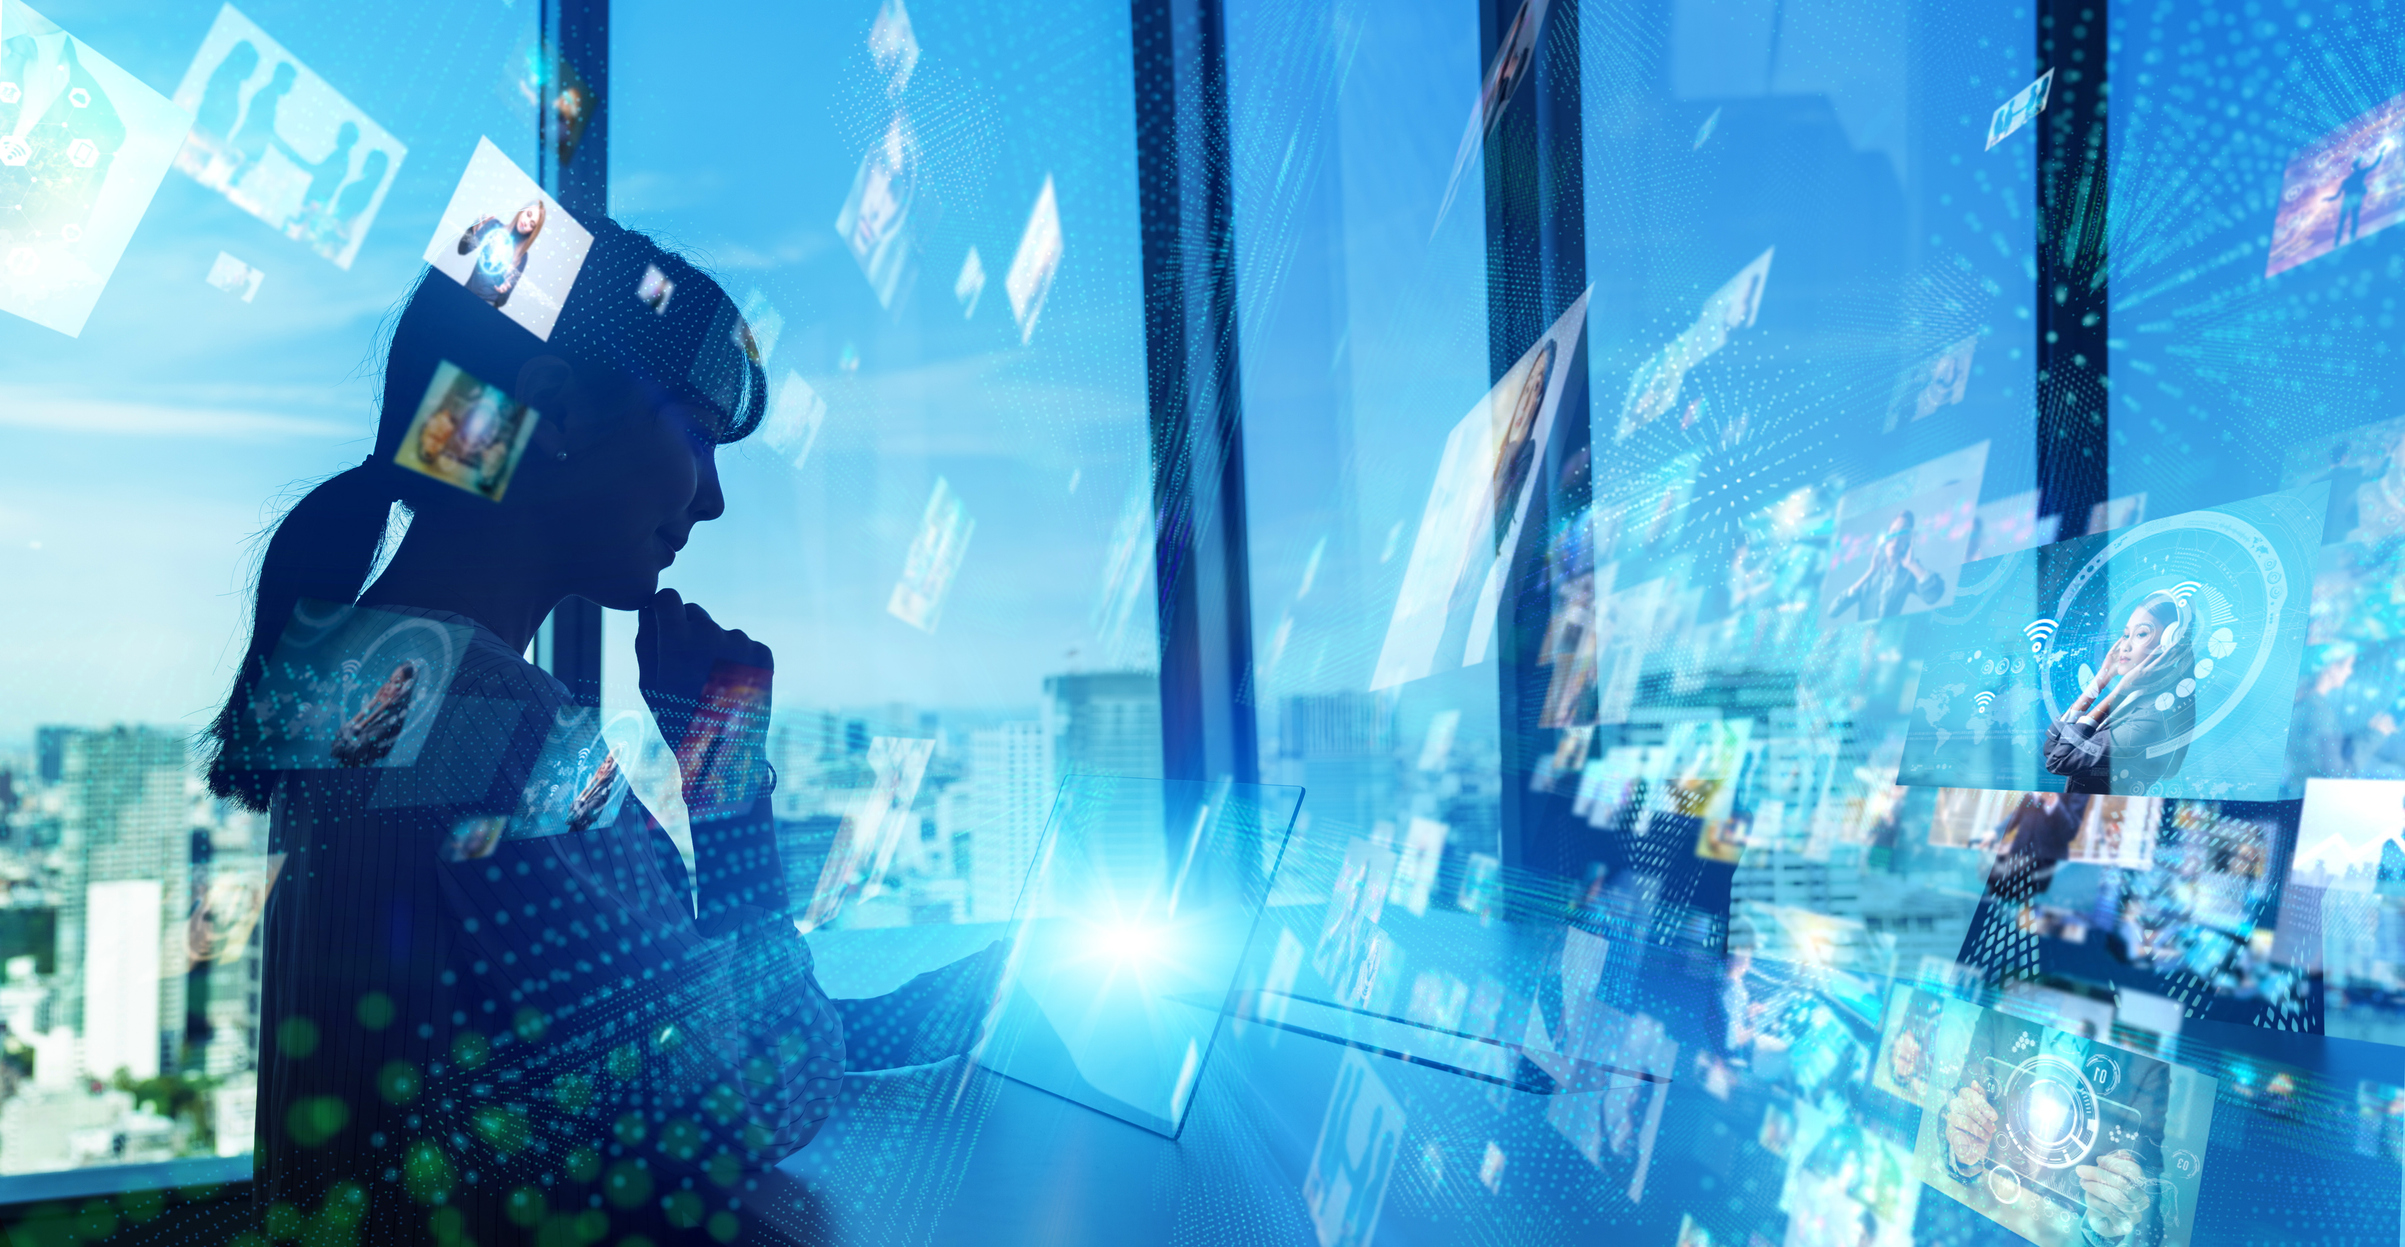 3 Virtual Experiences That Law Firm Advisers Can Impress Their Clients With